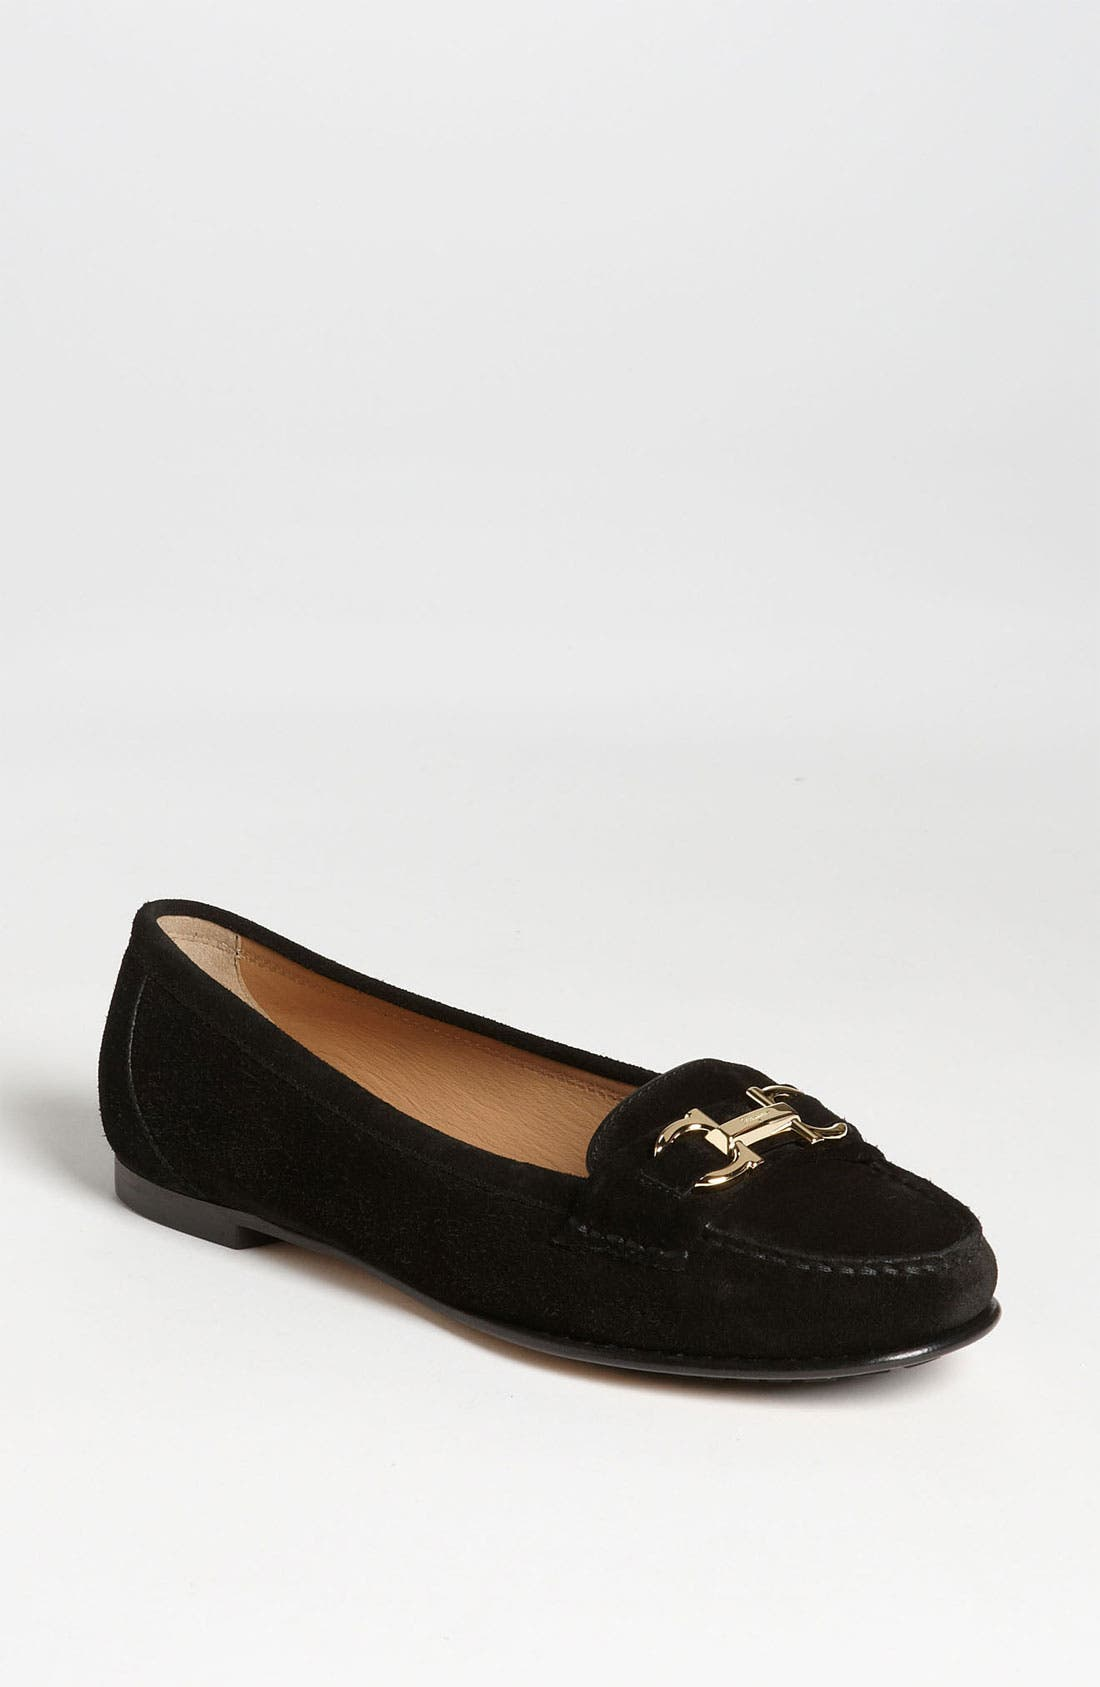 Alternate Image 1 Selected - Salvatore Ferragamo 'Taiga' Loafer